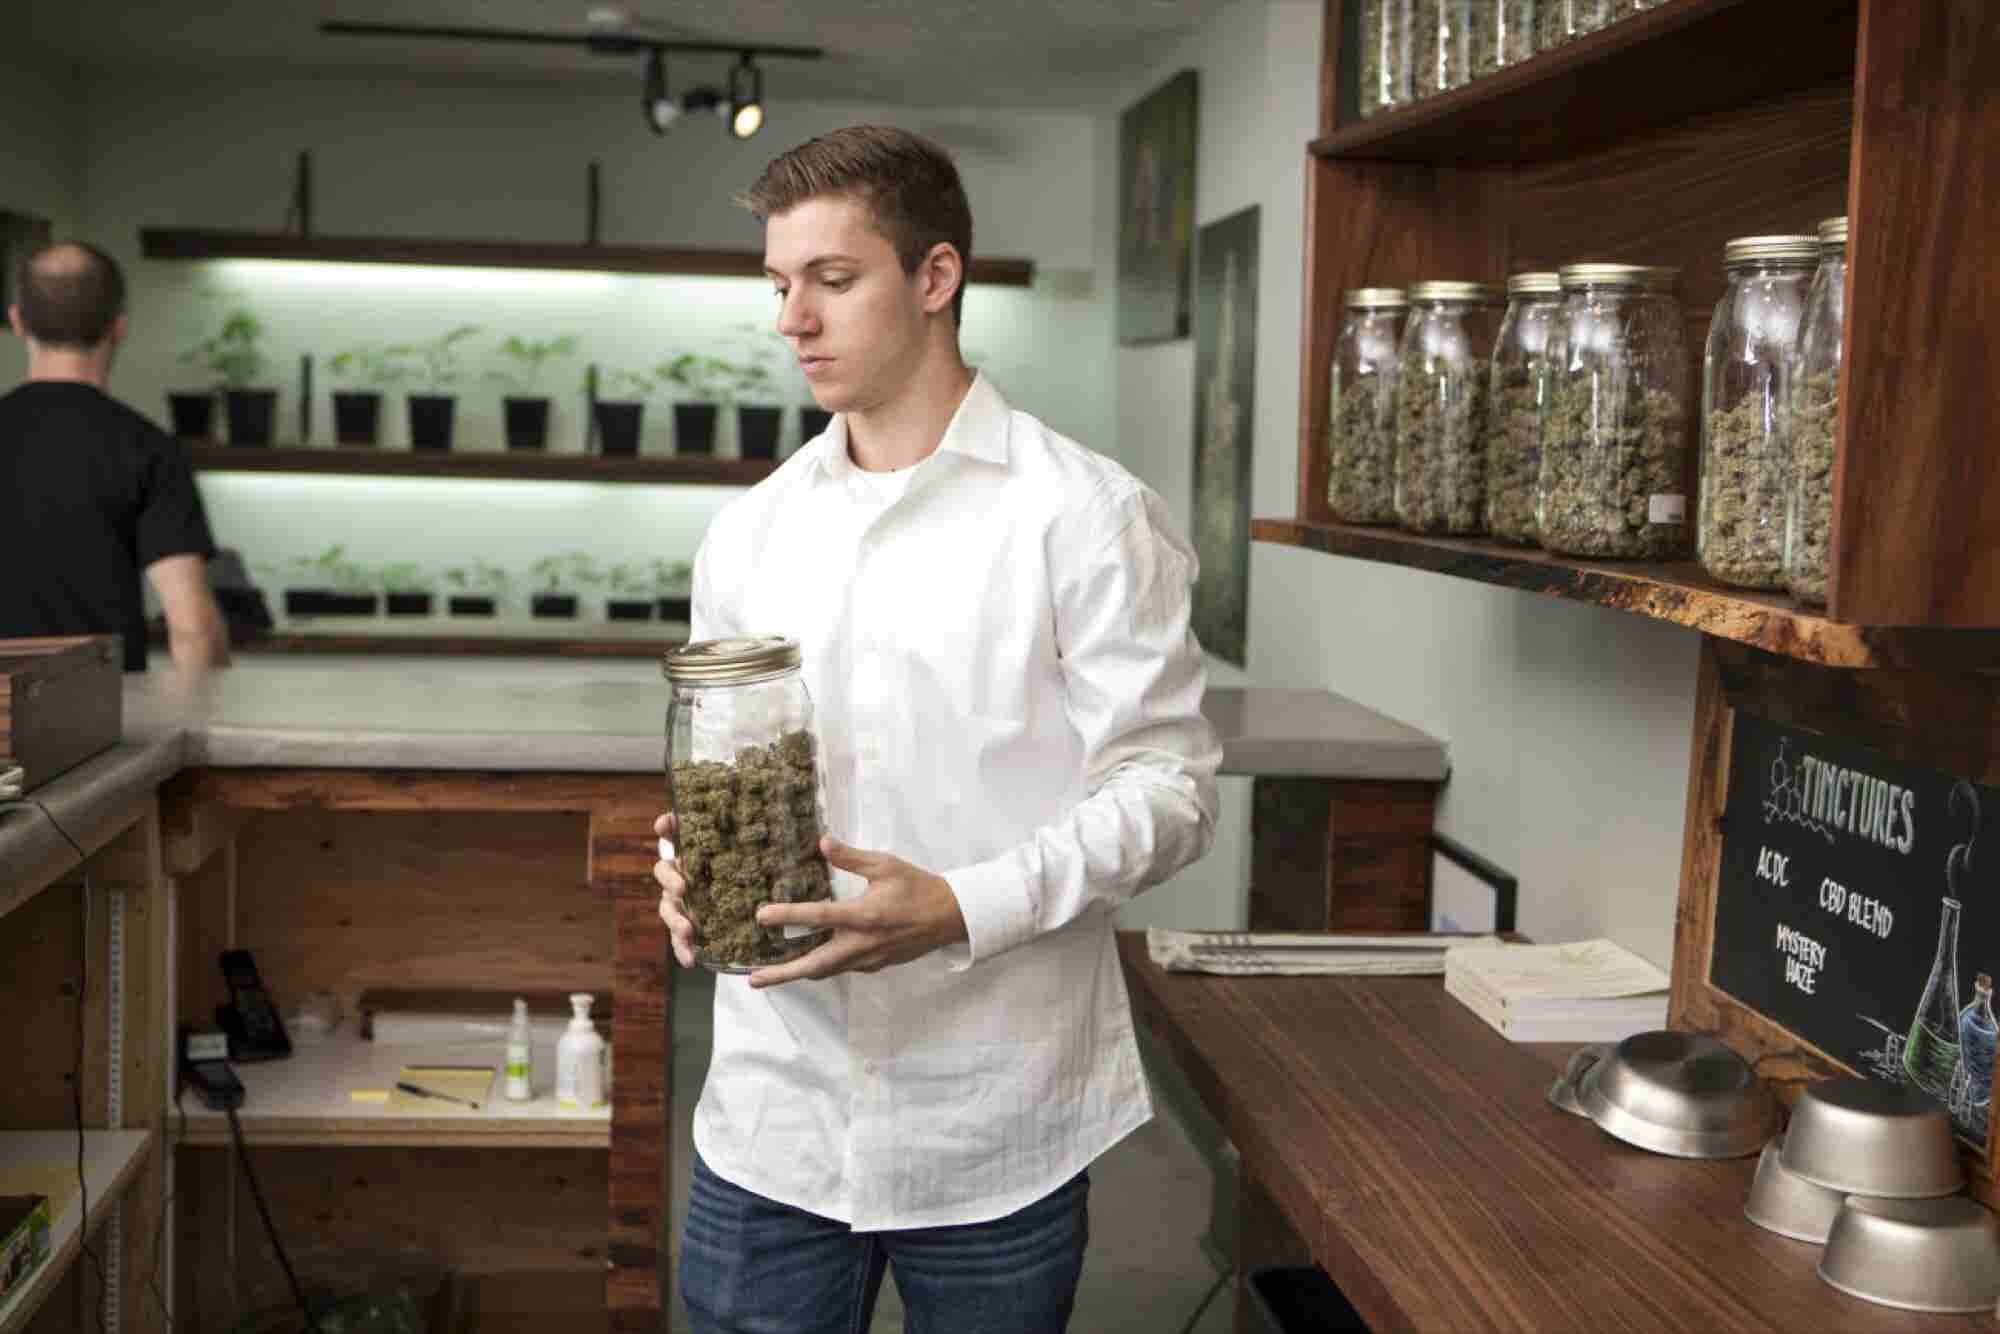 Cannabis Industry Likely to Employ More Than 400,000 By 2021, Study Pr...